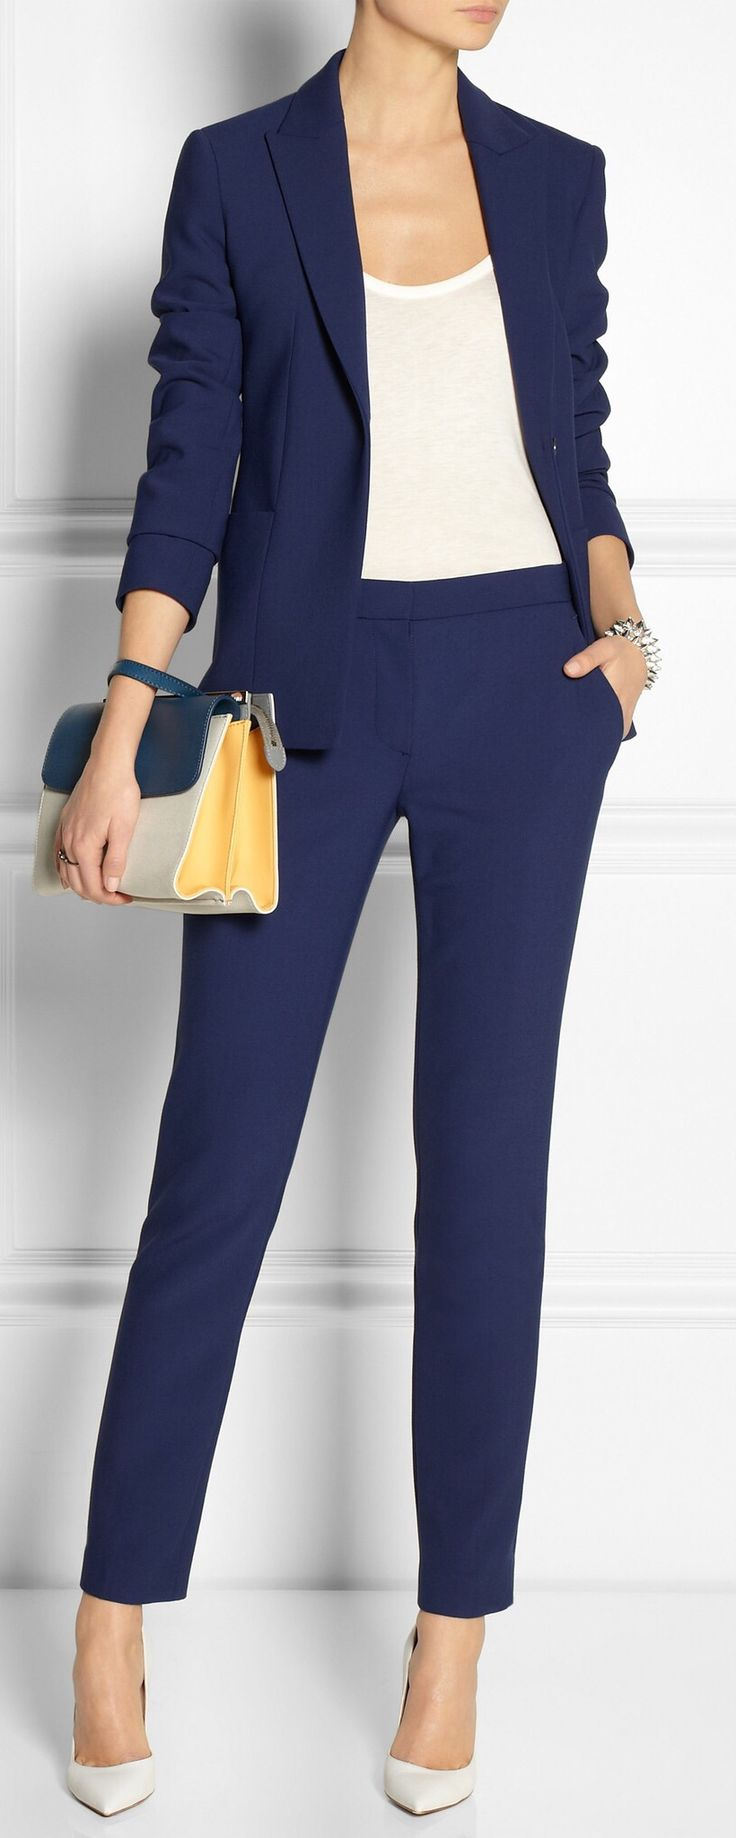 Elegant  Outfit On Pinterest  Navy Pants Navy Blue Pants And Chinos Women